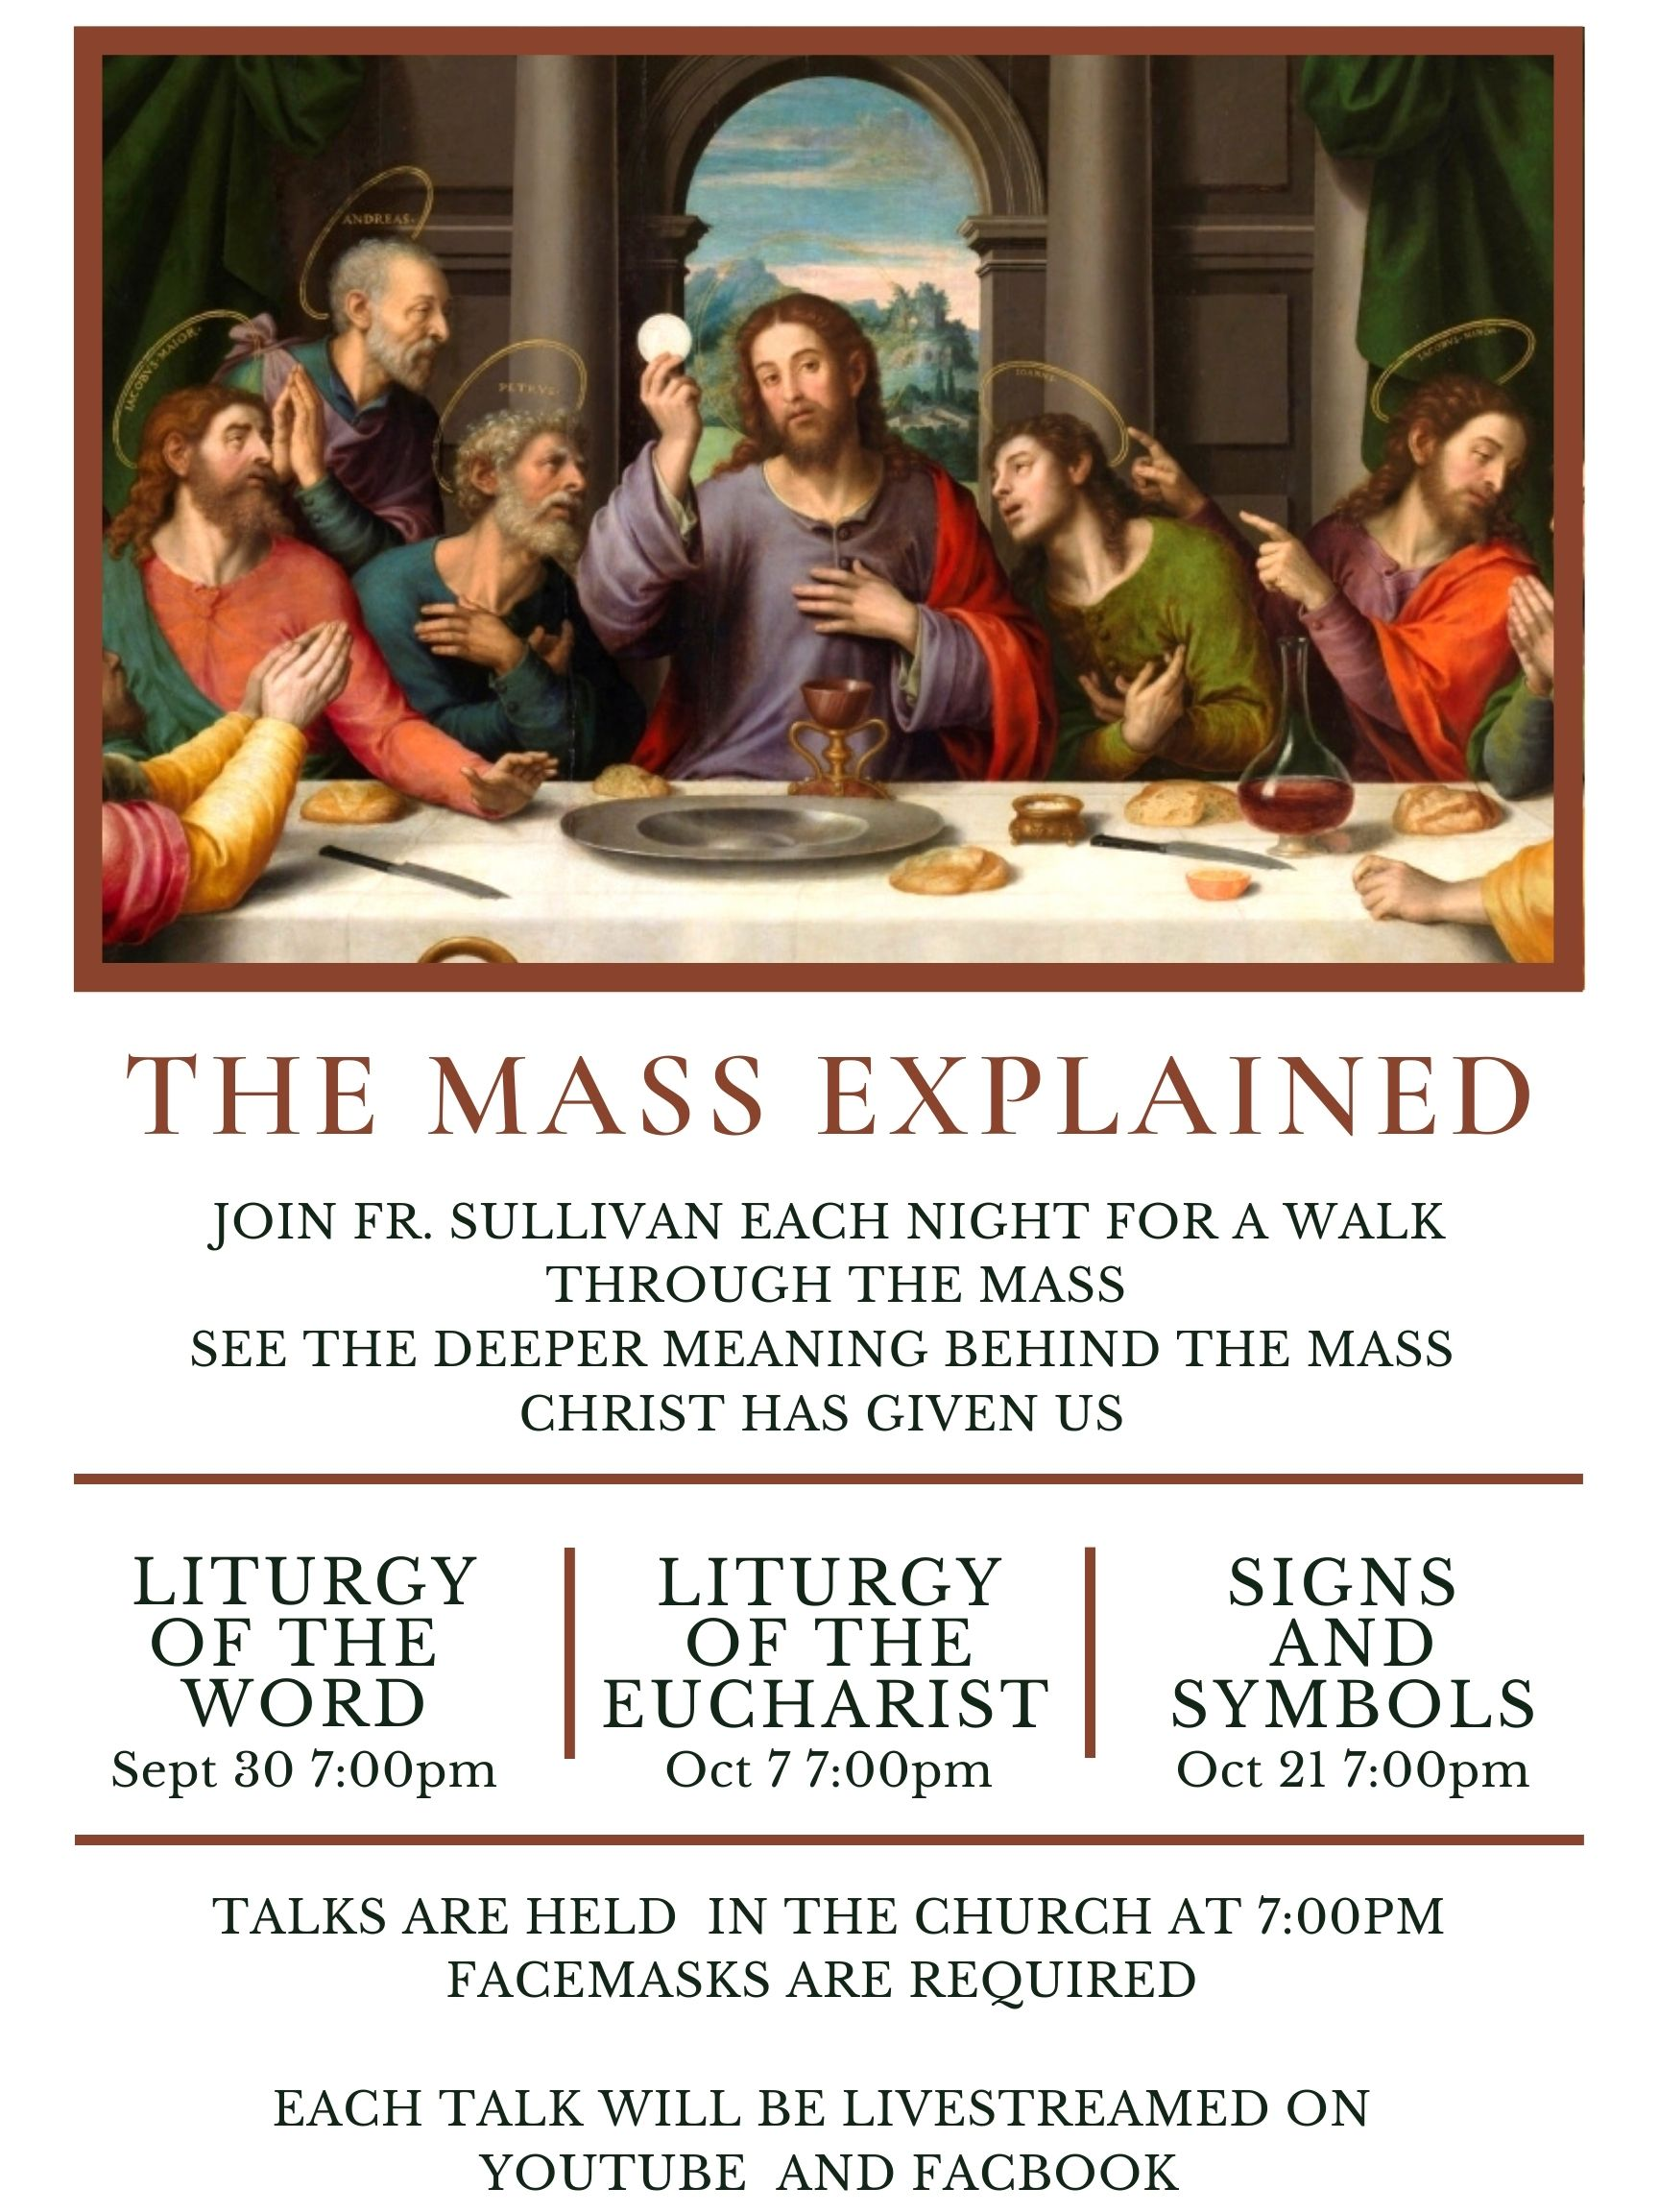 The mass explained 2020